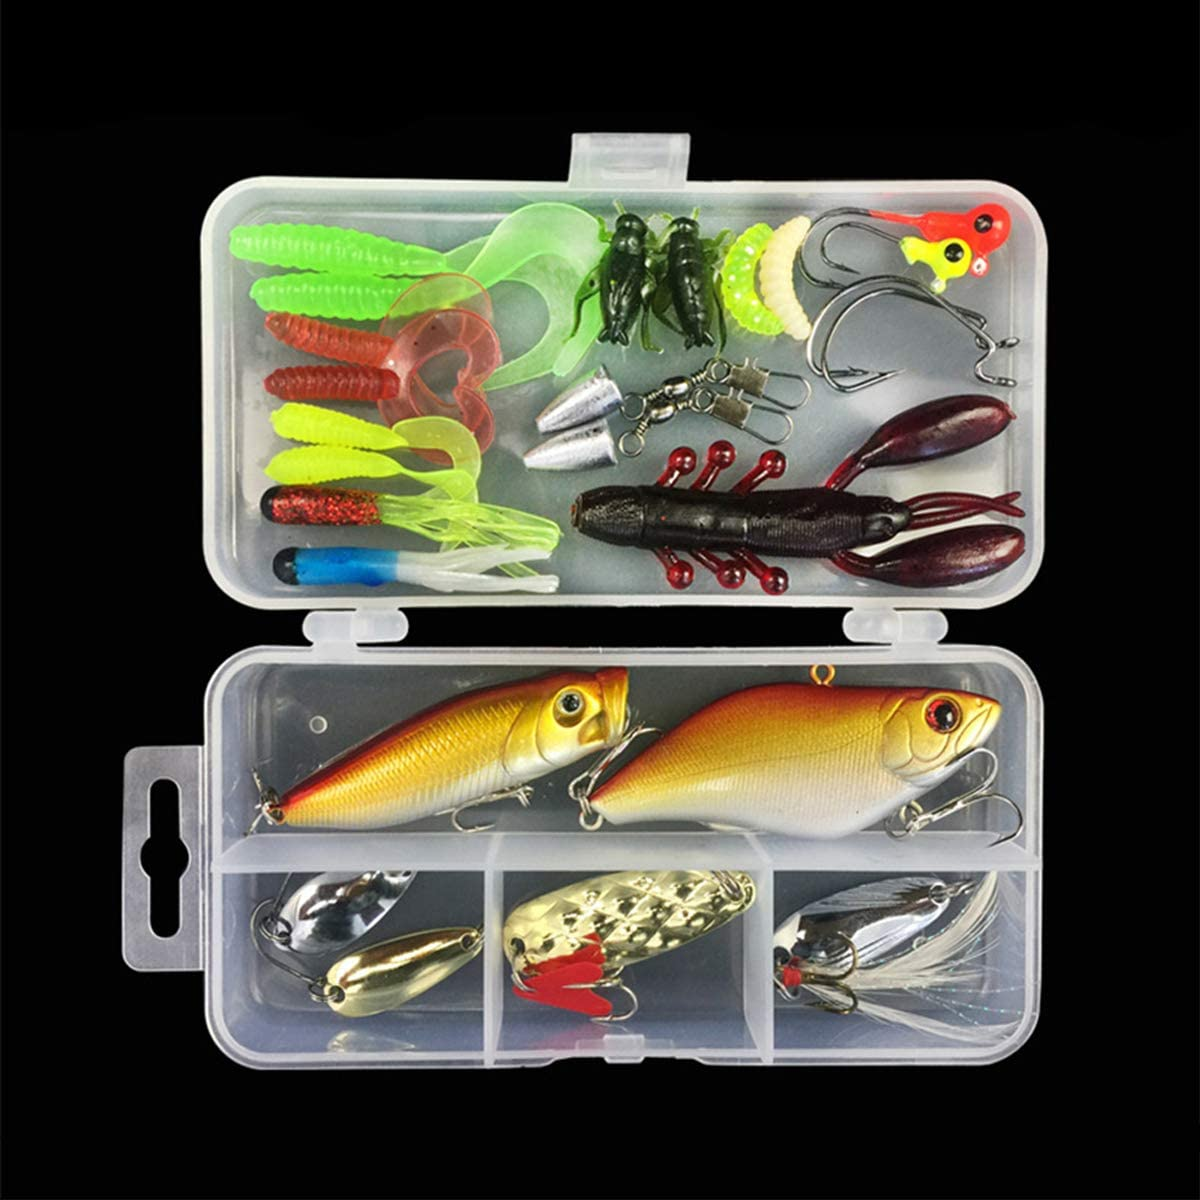 MKNZOME Mixed Fishing Lures Set Hard Bait Lifelike Sinking Swimbait Lure Fishing Spoon Spinner Lure Minnow VIB Lure with Treble Hook Popper Crankbait for Trout Walleye Carp Trout Pike